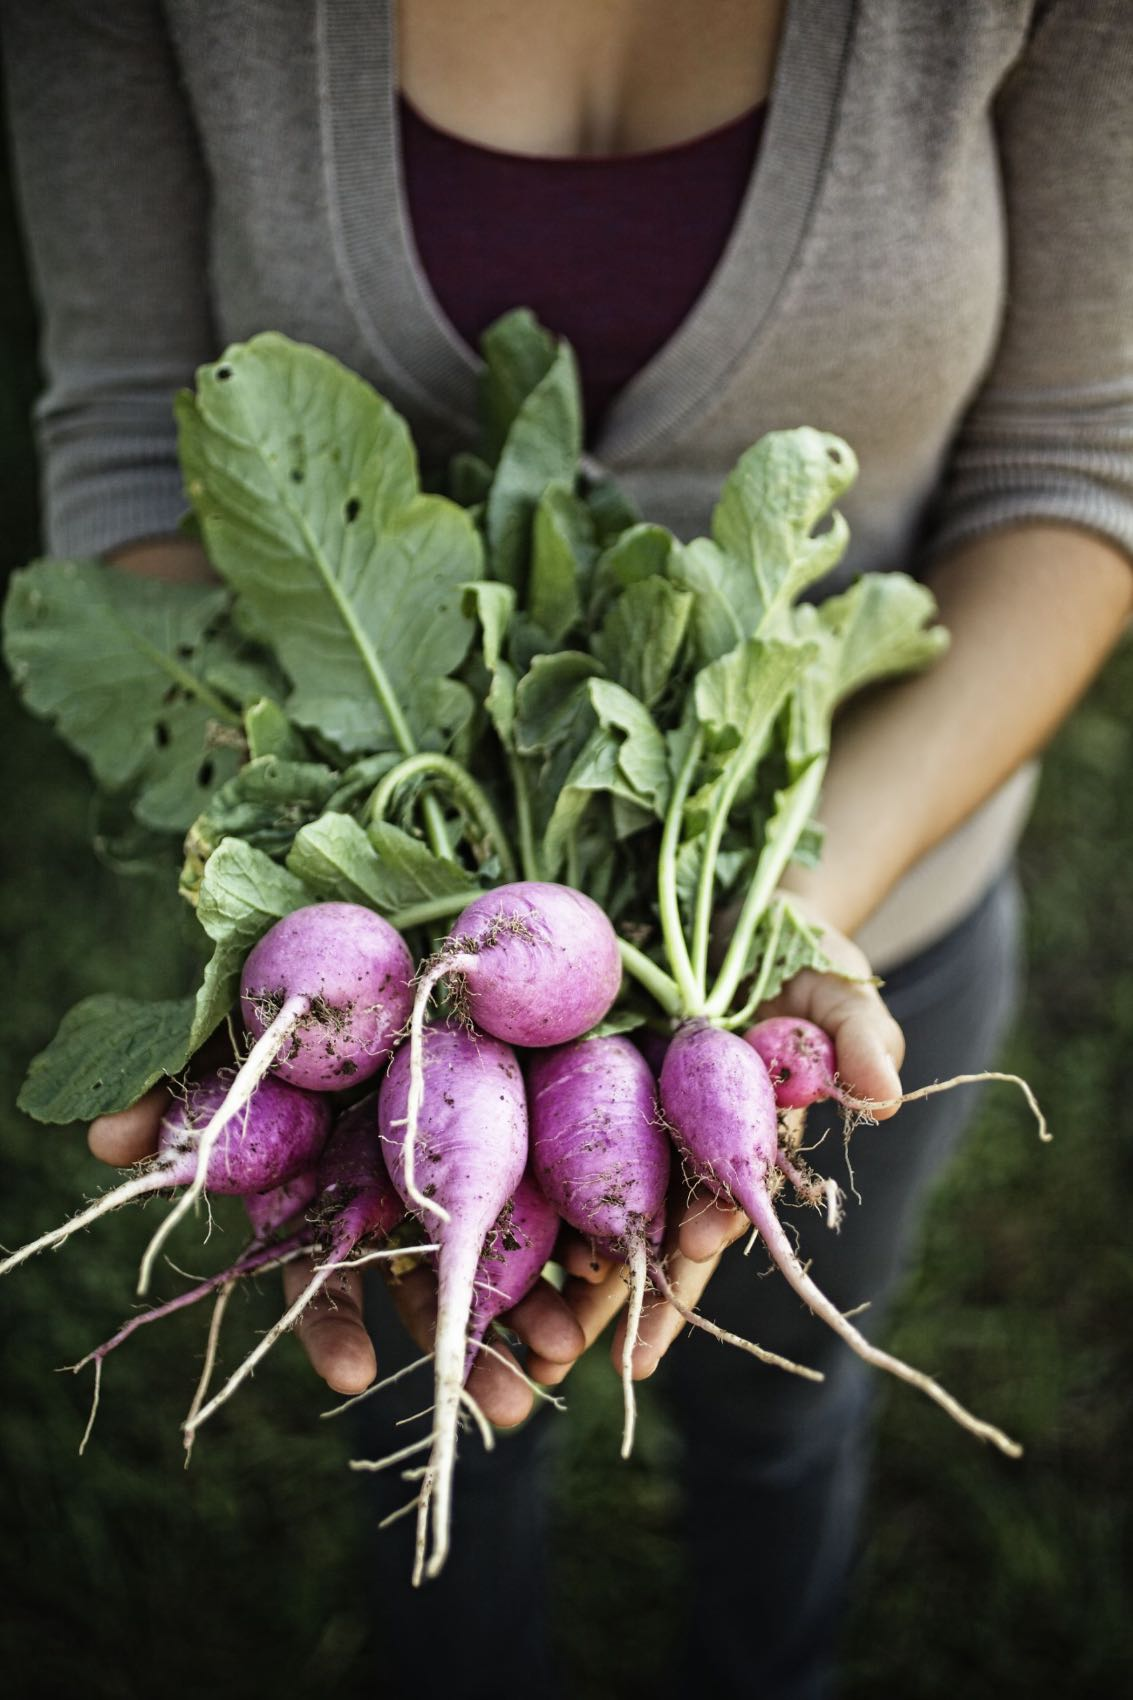 Jody Horton Photography - Woman presenting freshly picked radishes.